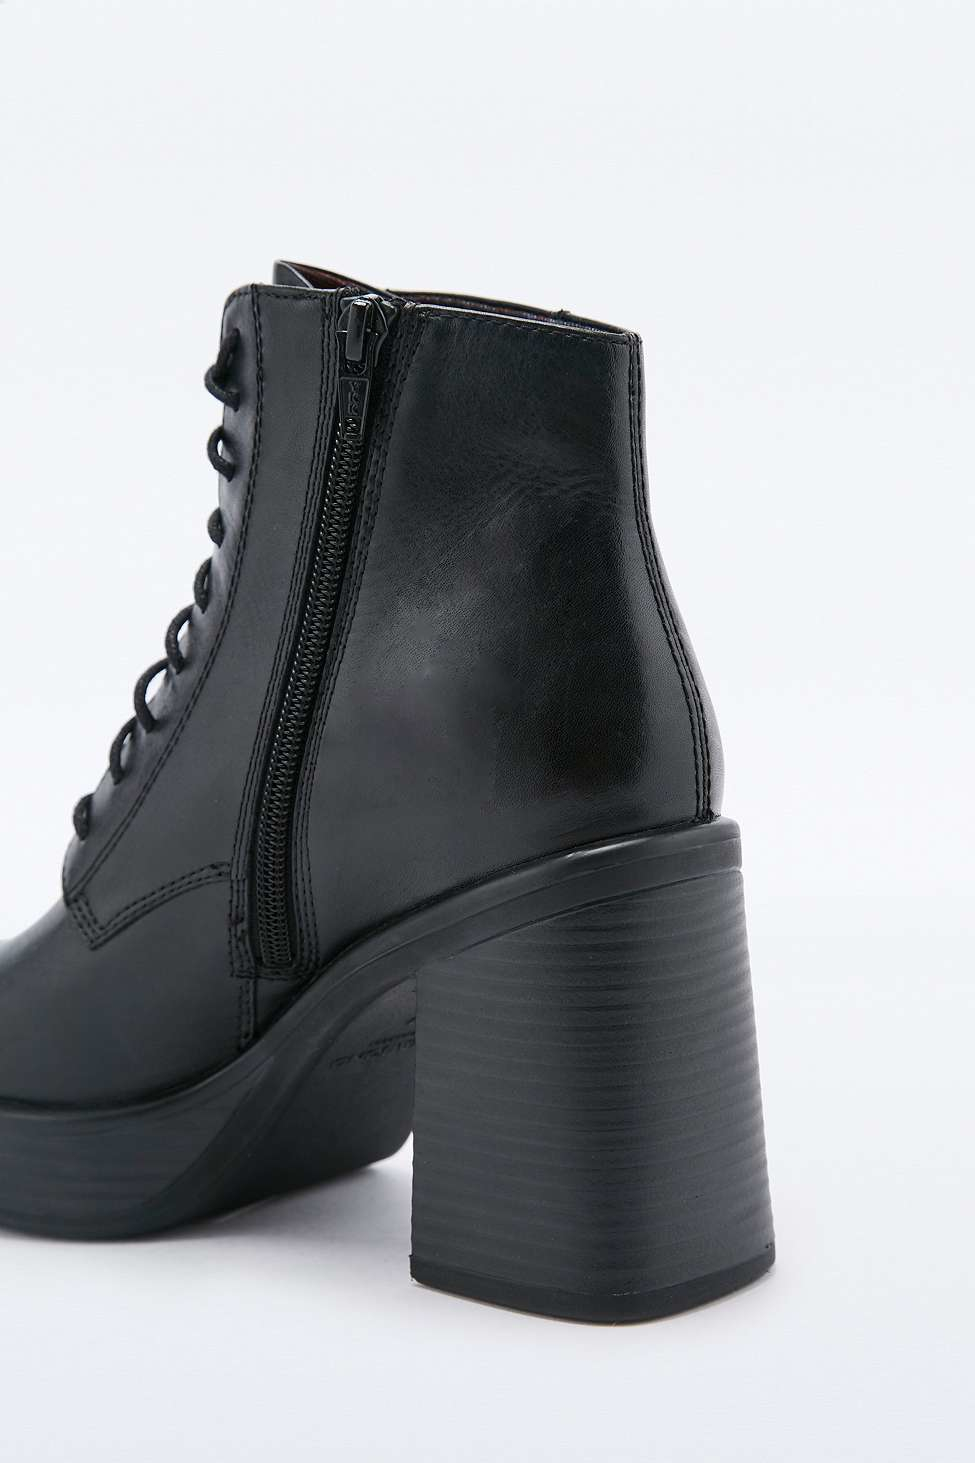 lyst vagabond tyra lace up ankle boots in black. Black Bedroom Furniture Sets. Home Design Ideas